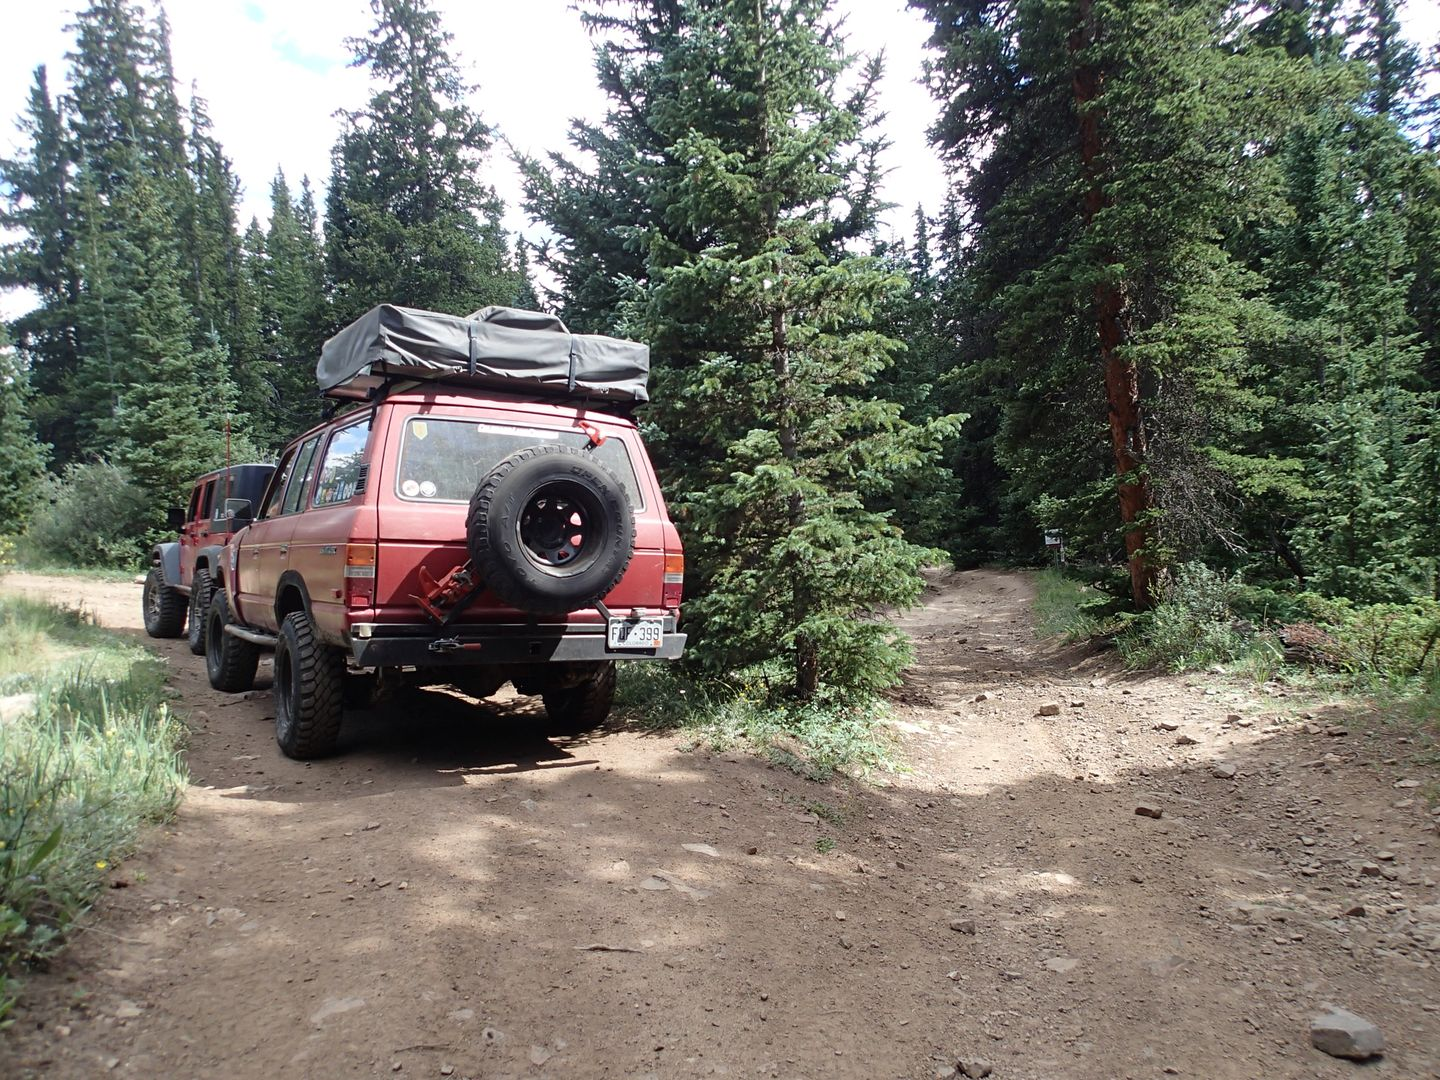 Brown's Pass  - Waypoint 1: Upper Trailhead/Intersection FS Road 175